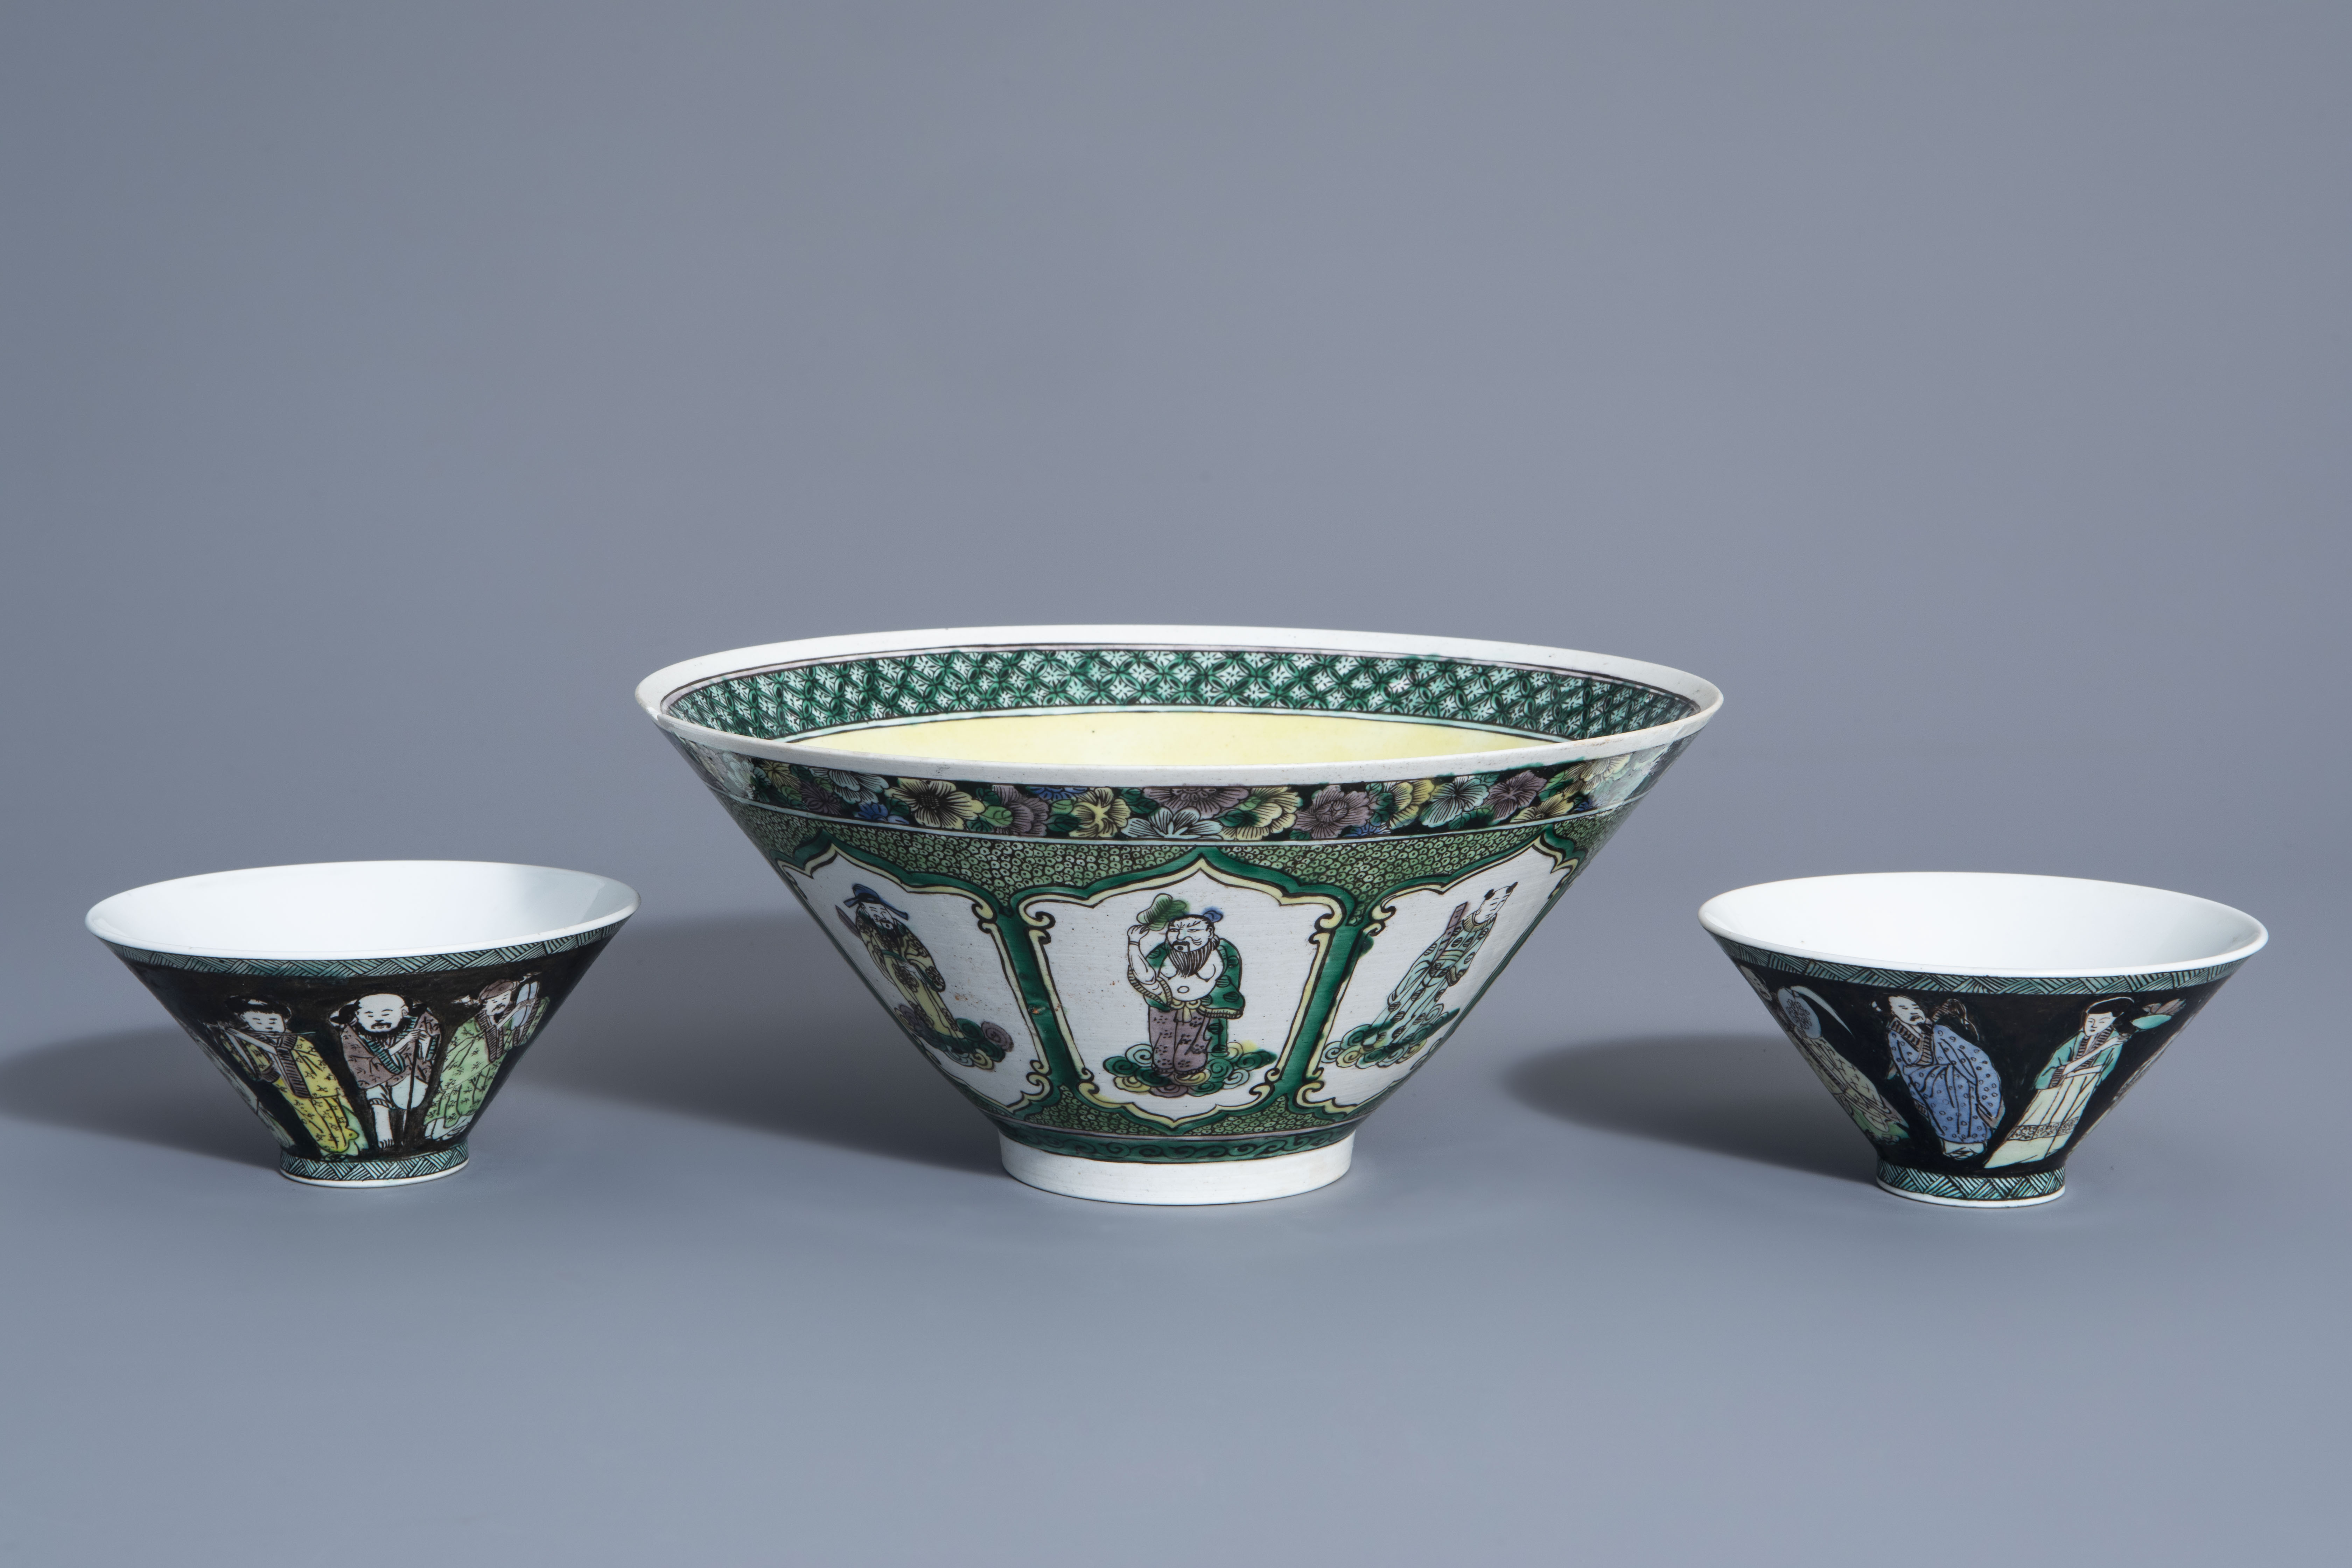 Three Chinese verte biscuit bowls with figurative design, Republic, 20th C. - Image 2 of 7